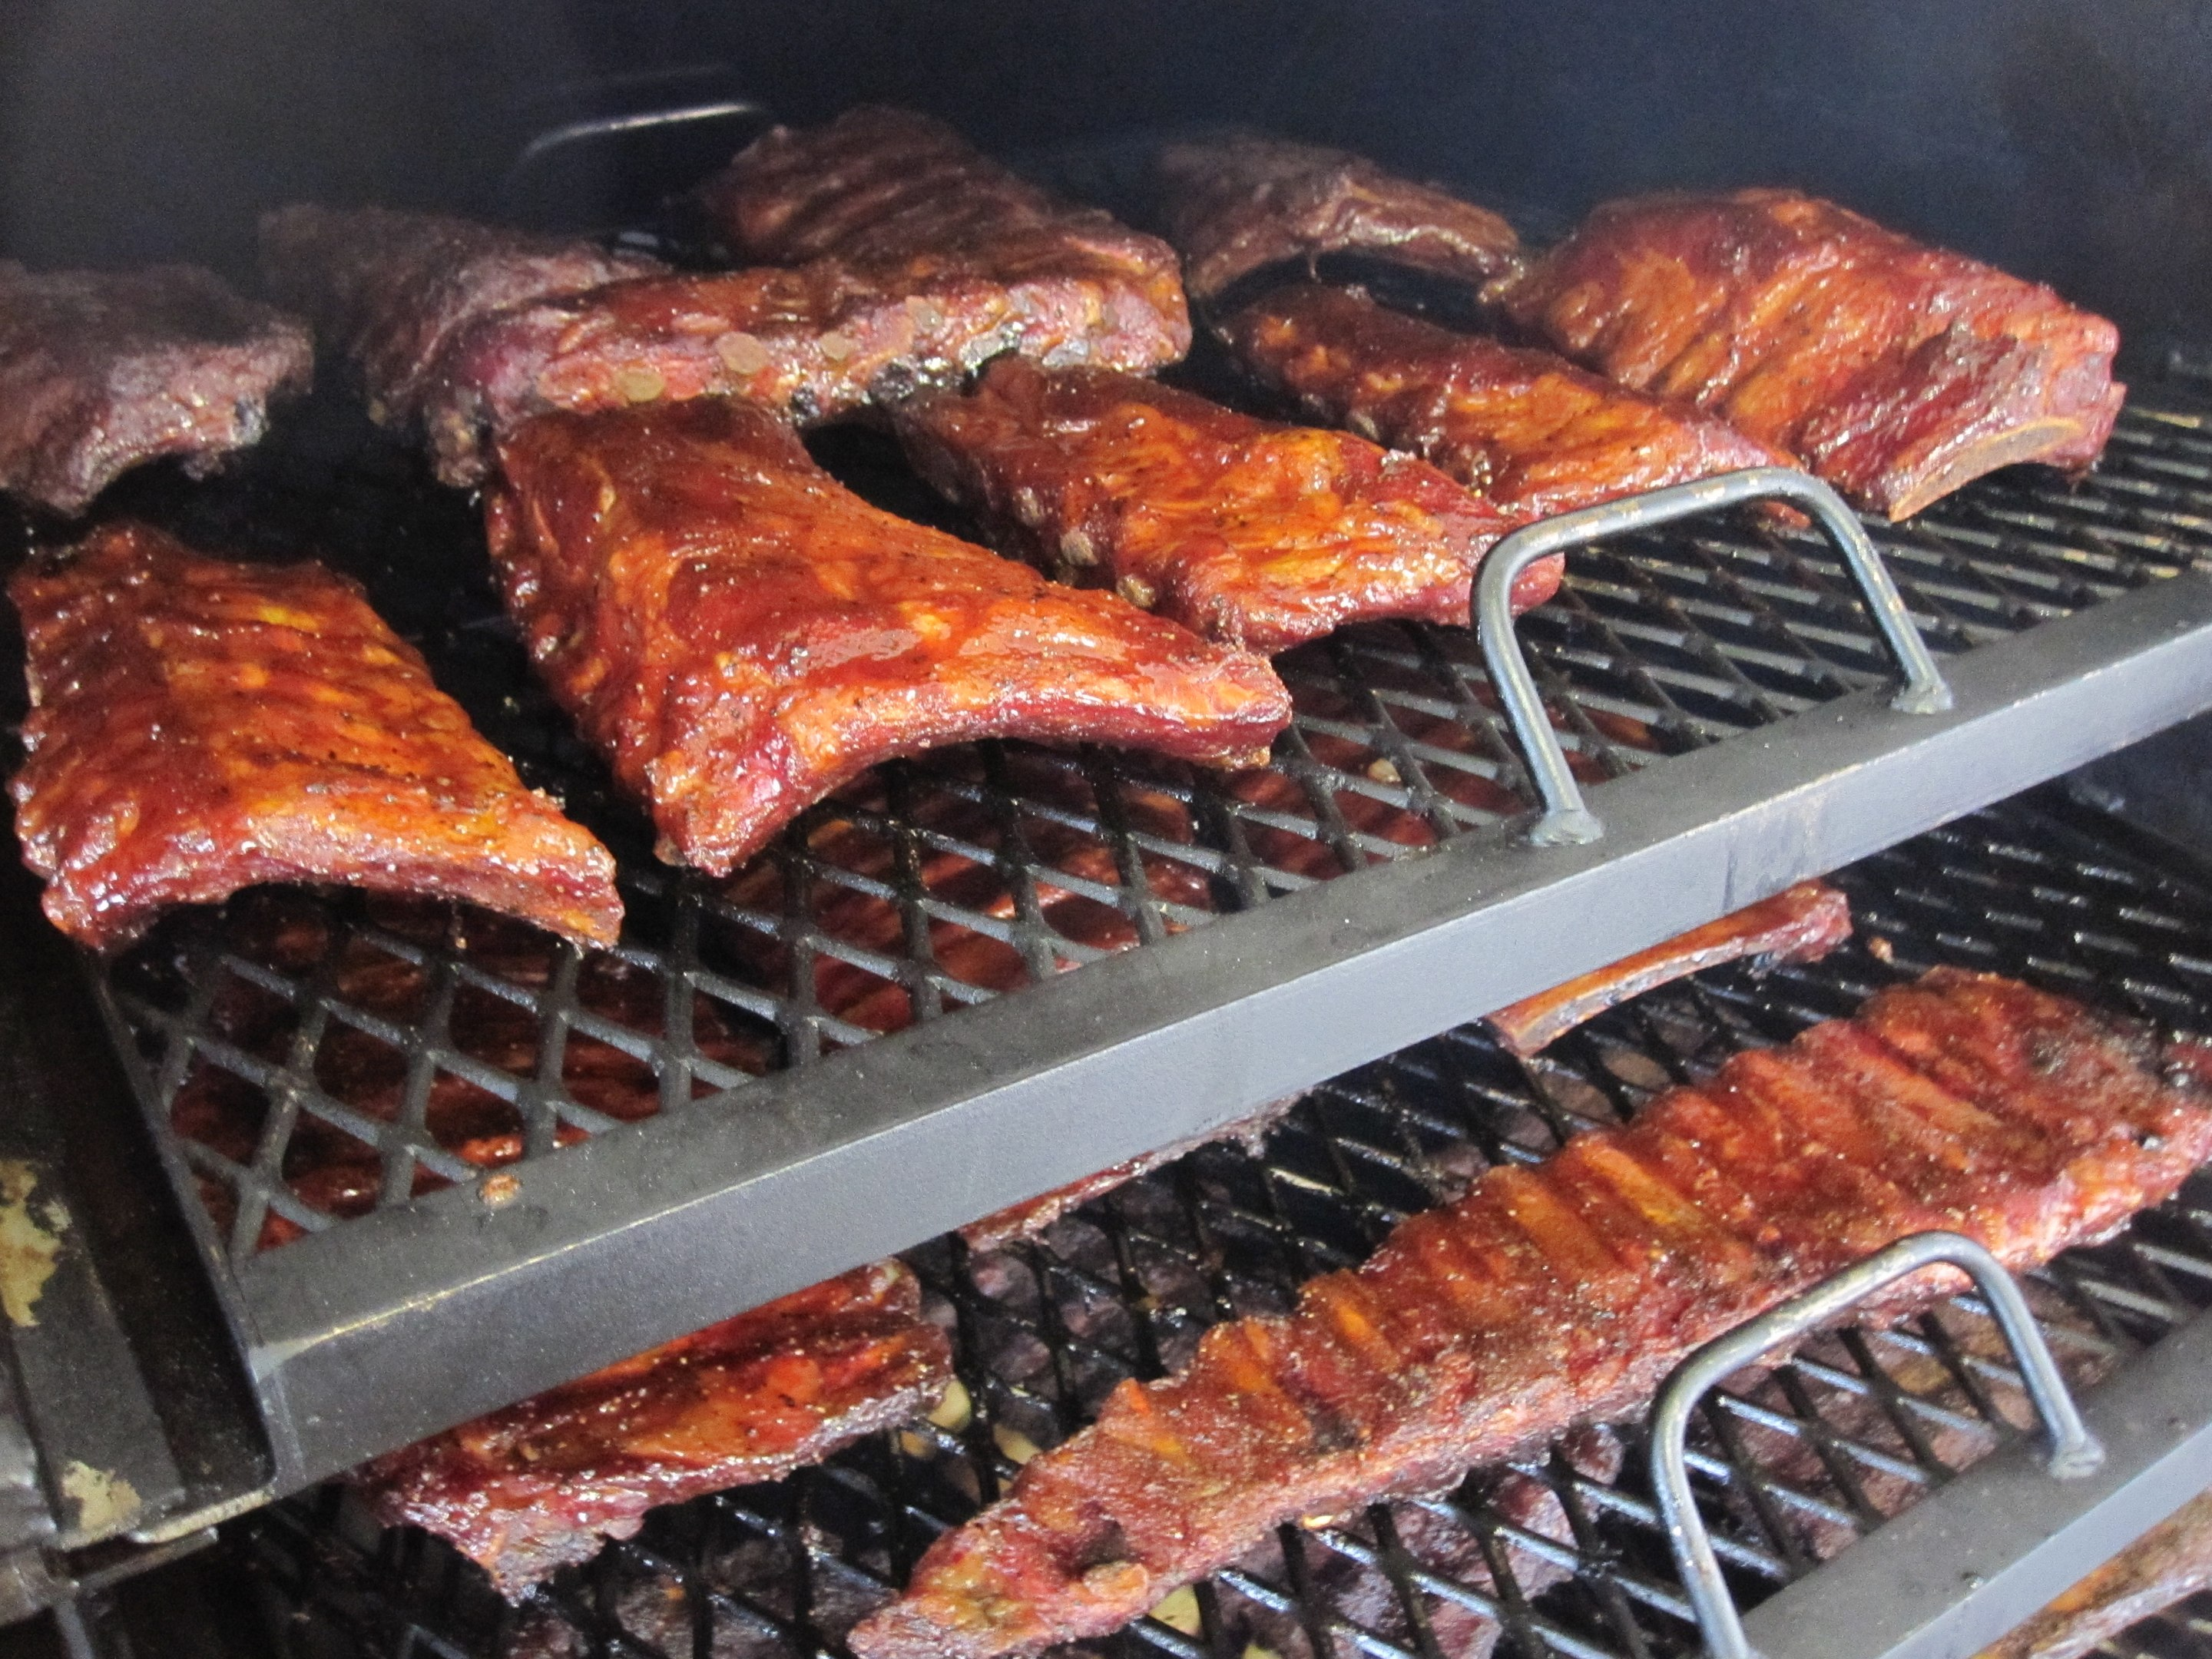 Meat selection texas barbecue for Side dishes for bbq ribs and chicken